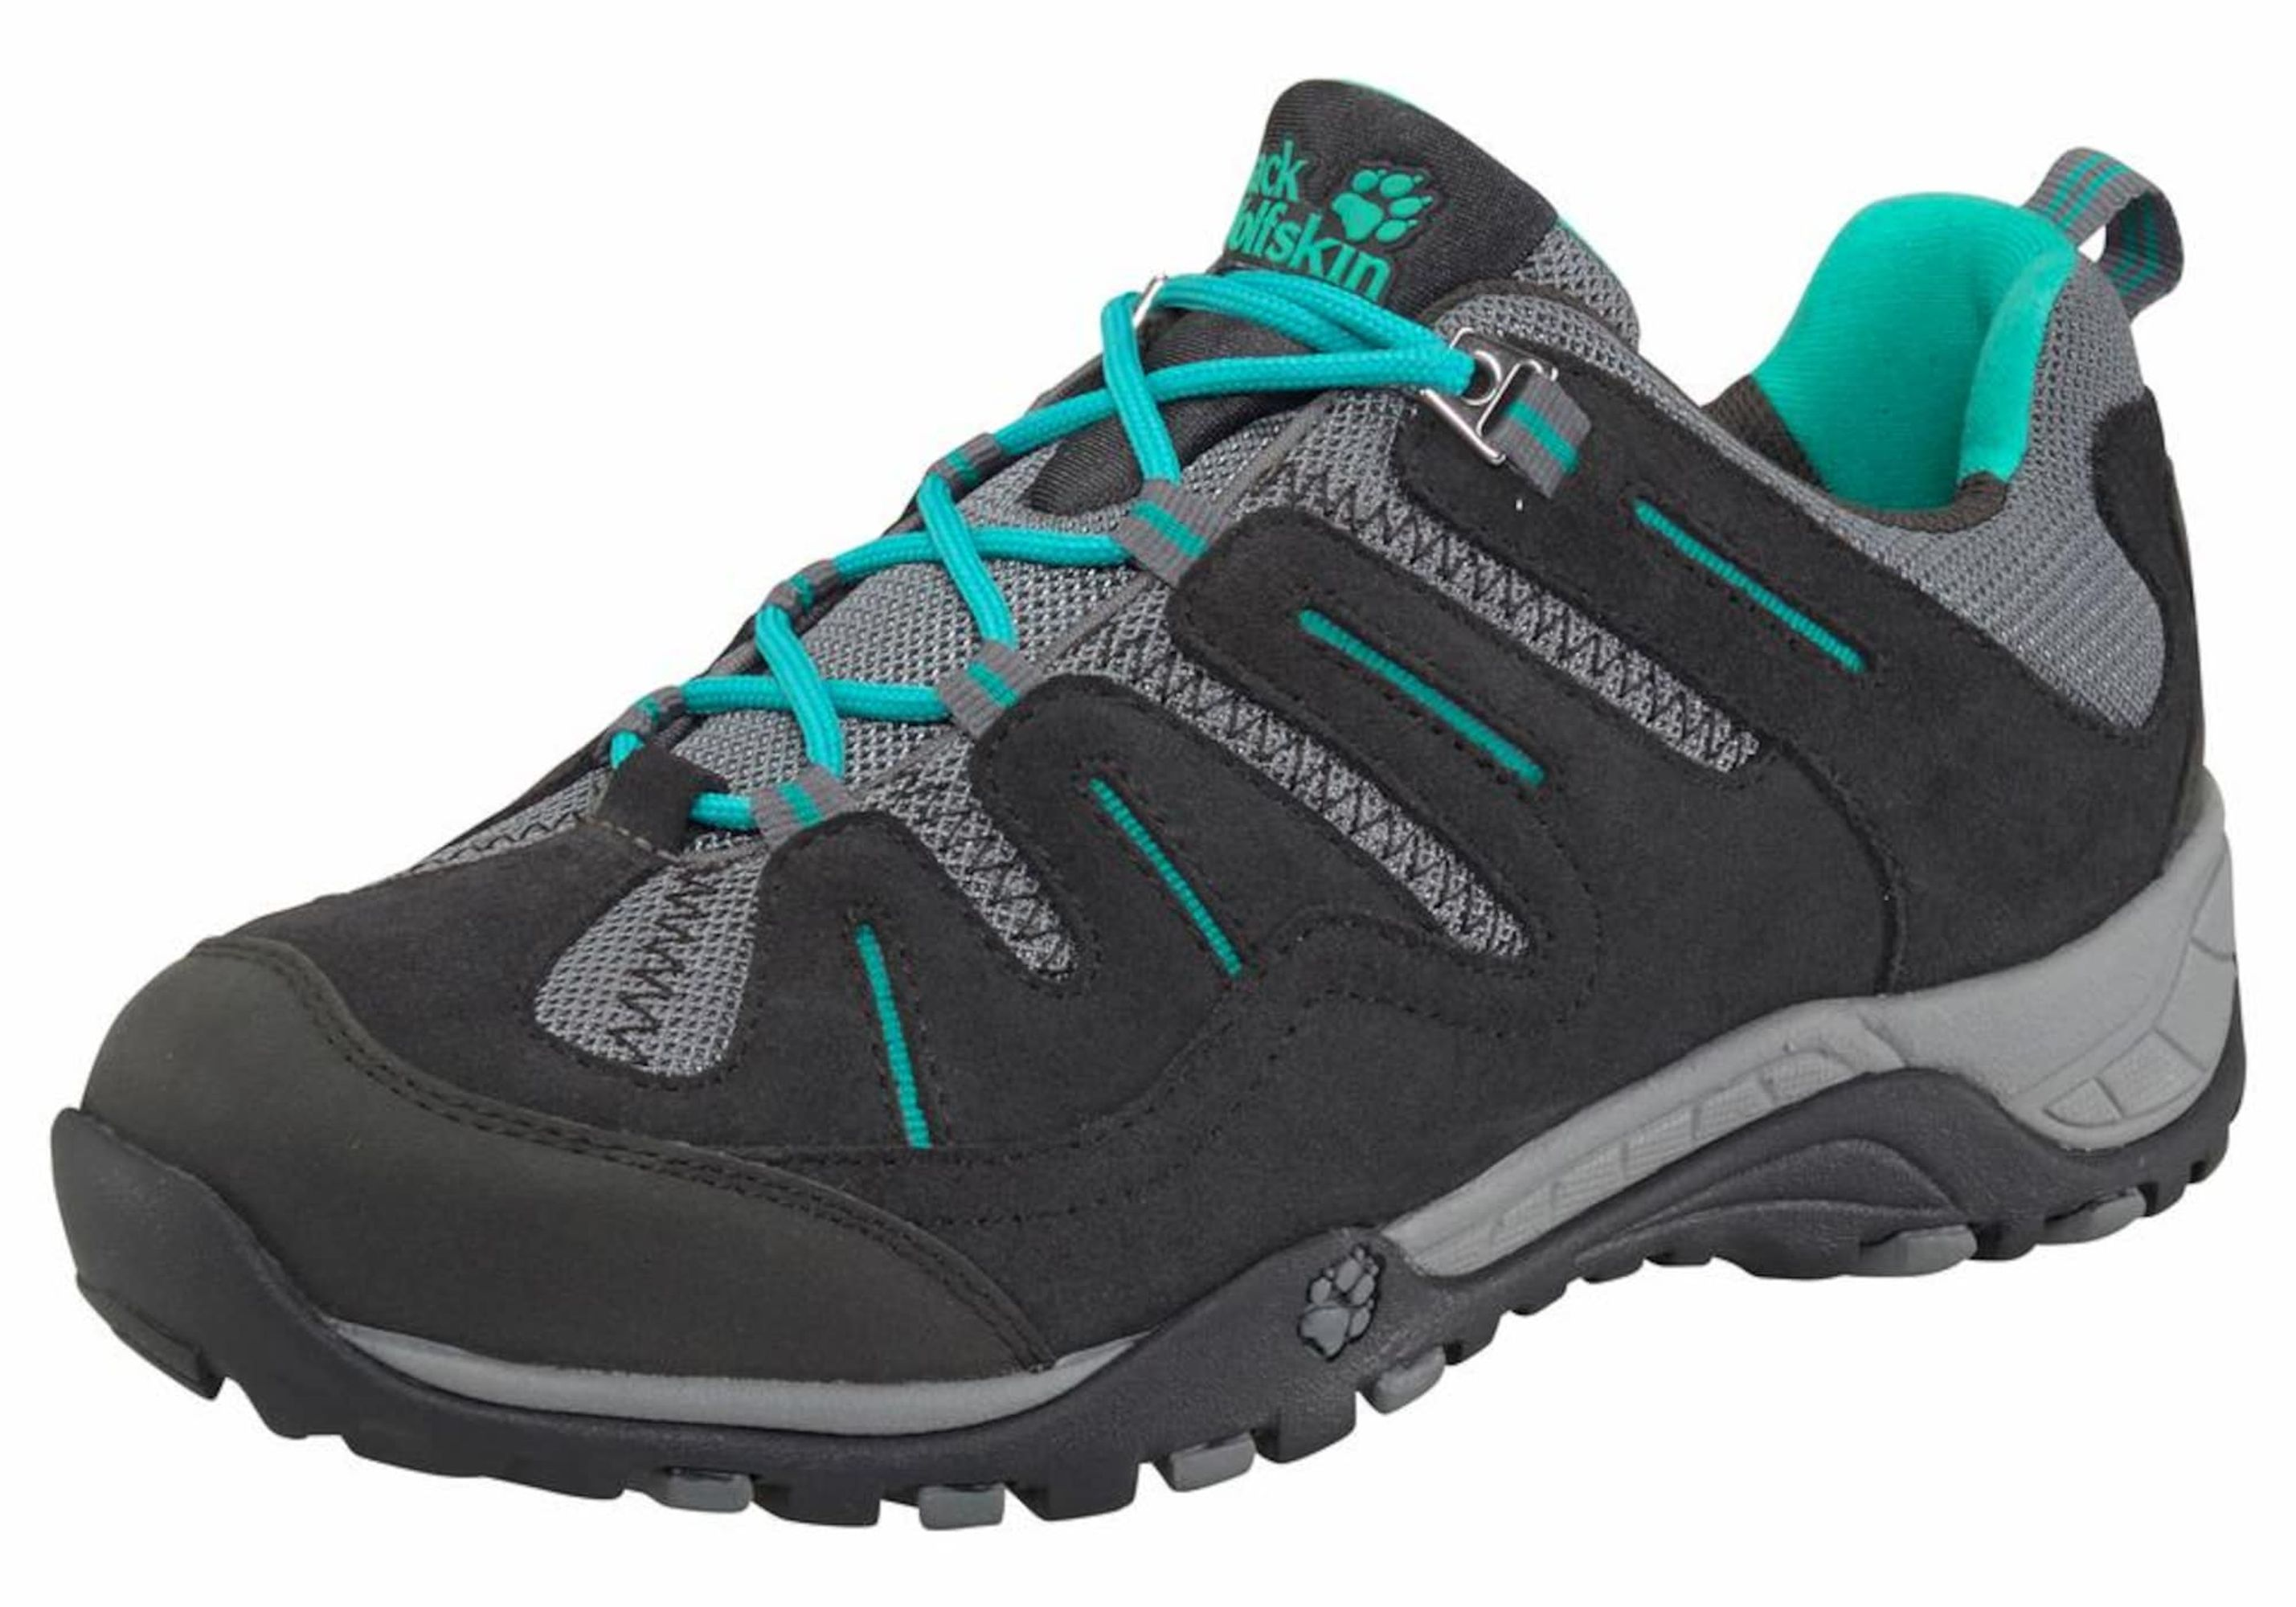 Outdoorschuh ´Switchback´